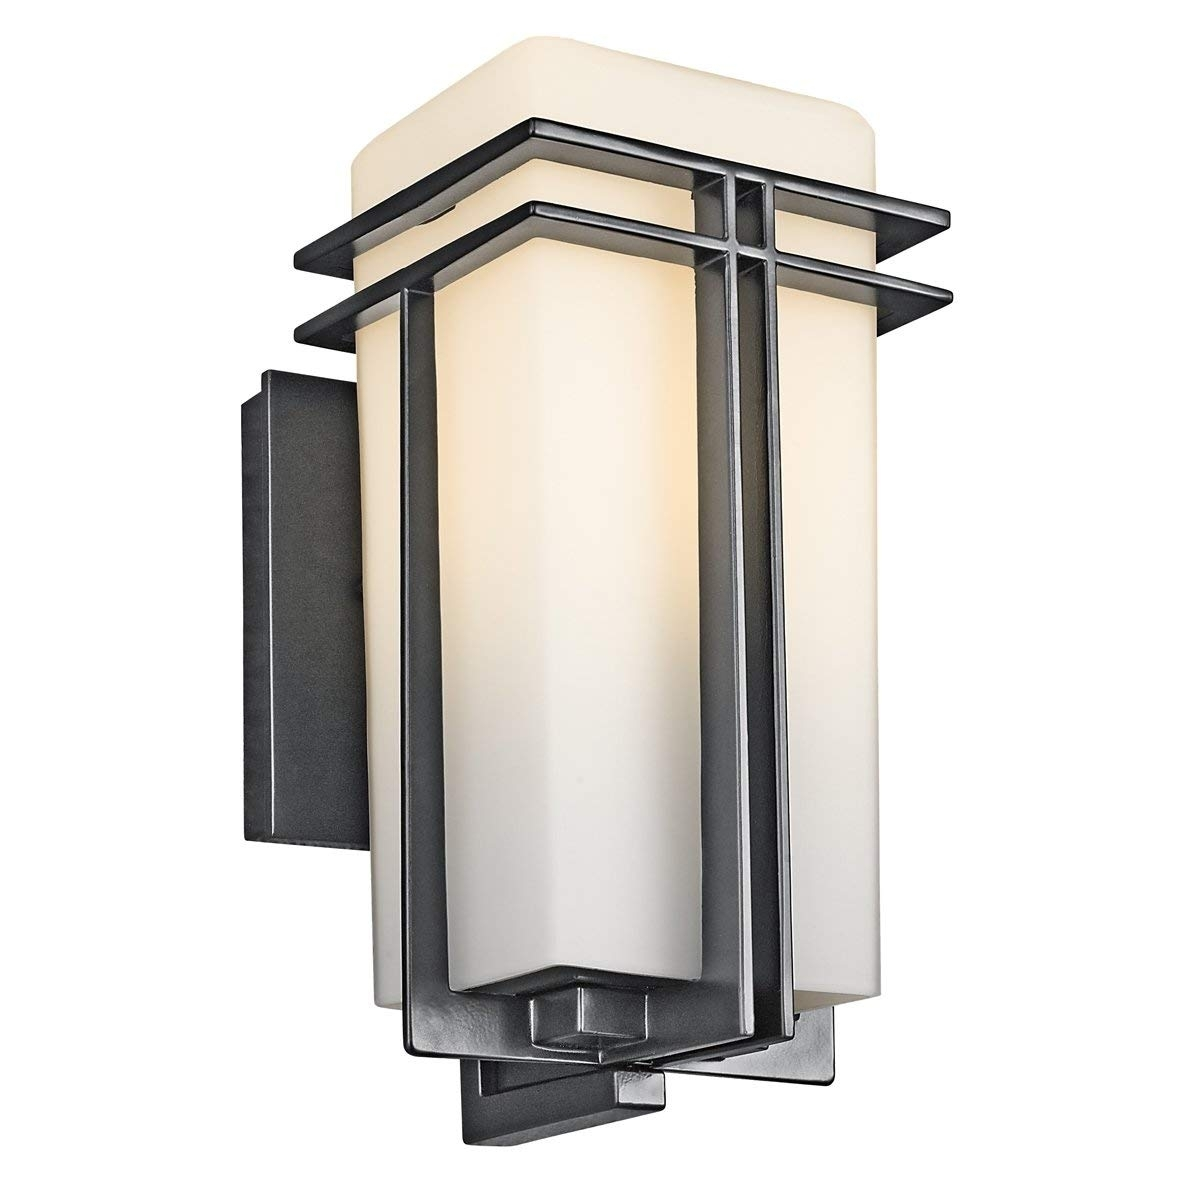 Kichler 49200Bk One Light Outdoor Wall Mount - Wall Porch Lights inside Outdoor Wall Lanterns (Image 11 of 20)